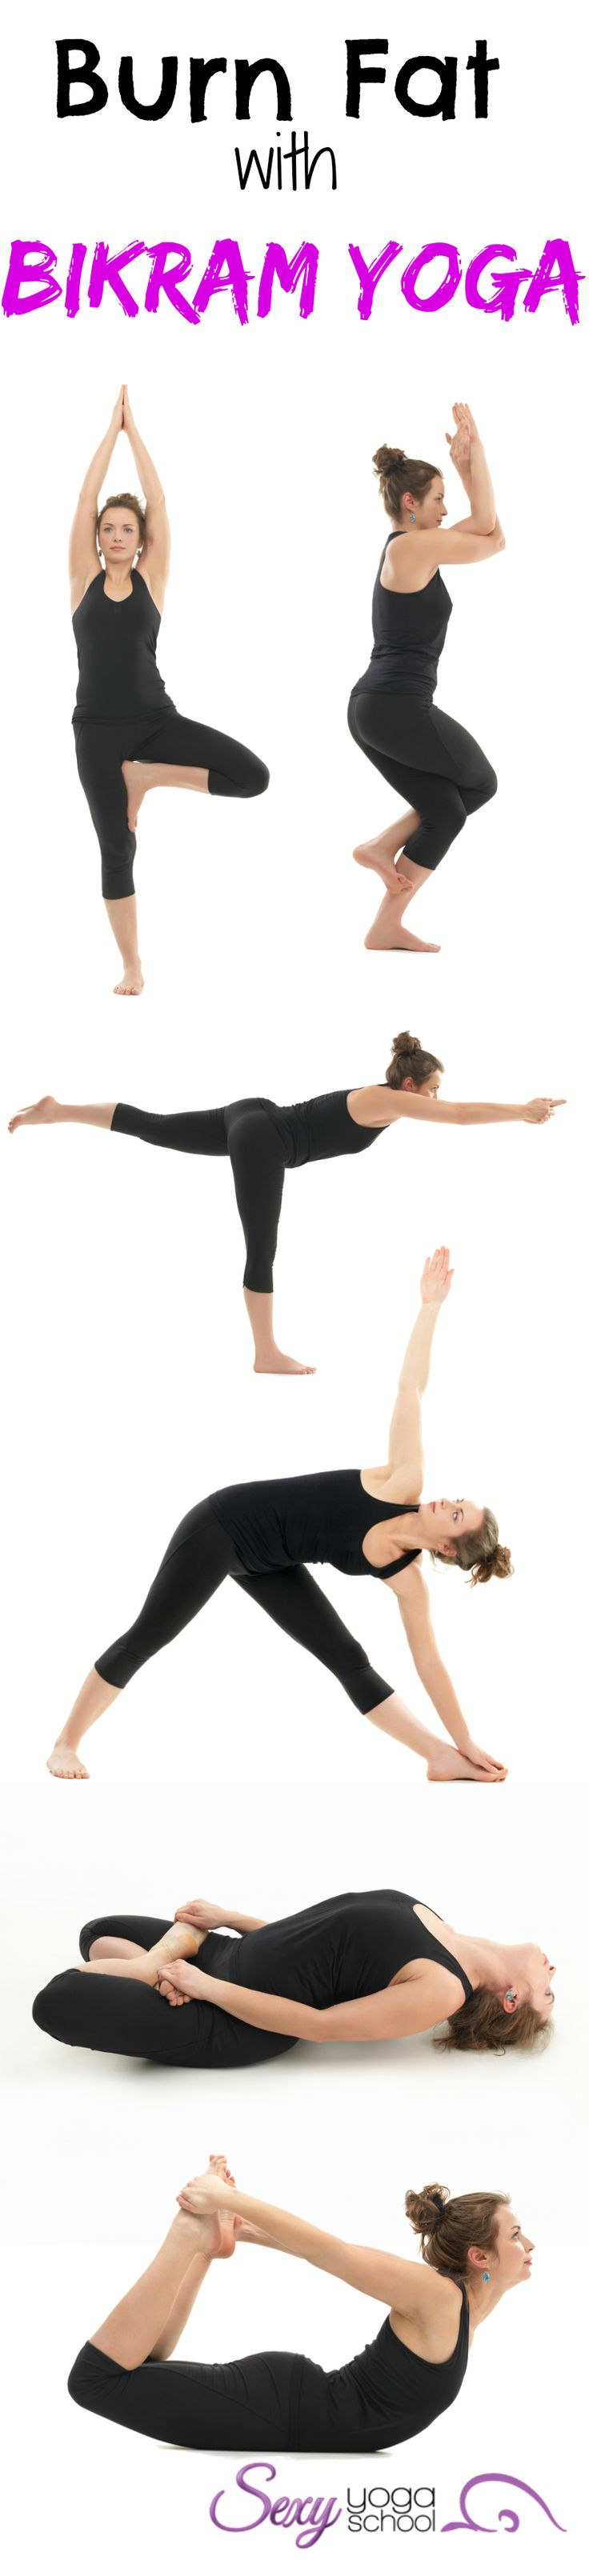 Bikram Yoga| Yoga For Weight Loss| Sizzle your way to a healthier body—try out this HOT yoga style